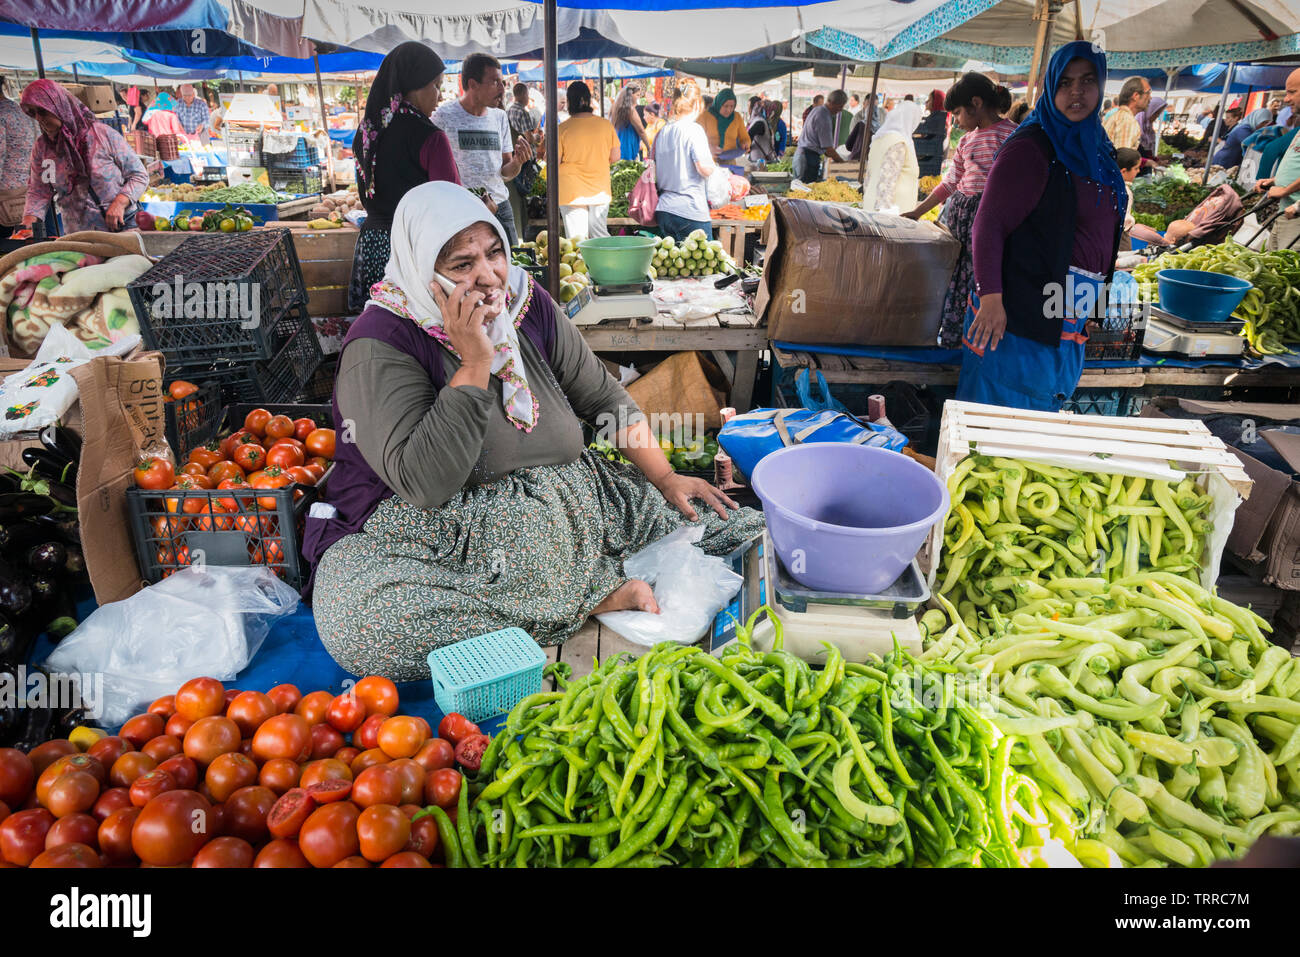 A stallholder selling vegetables chats on her mobile phone during the Saturday market, also known as Berivan Market, Selcuk, Turkey Stock Photo